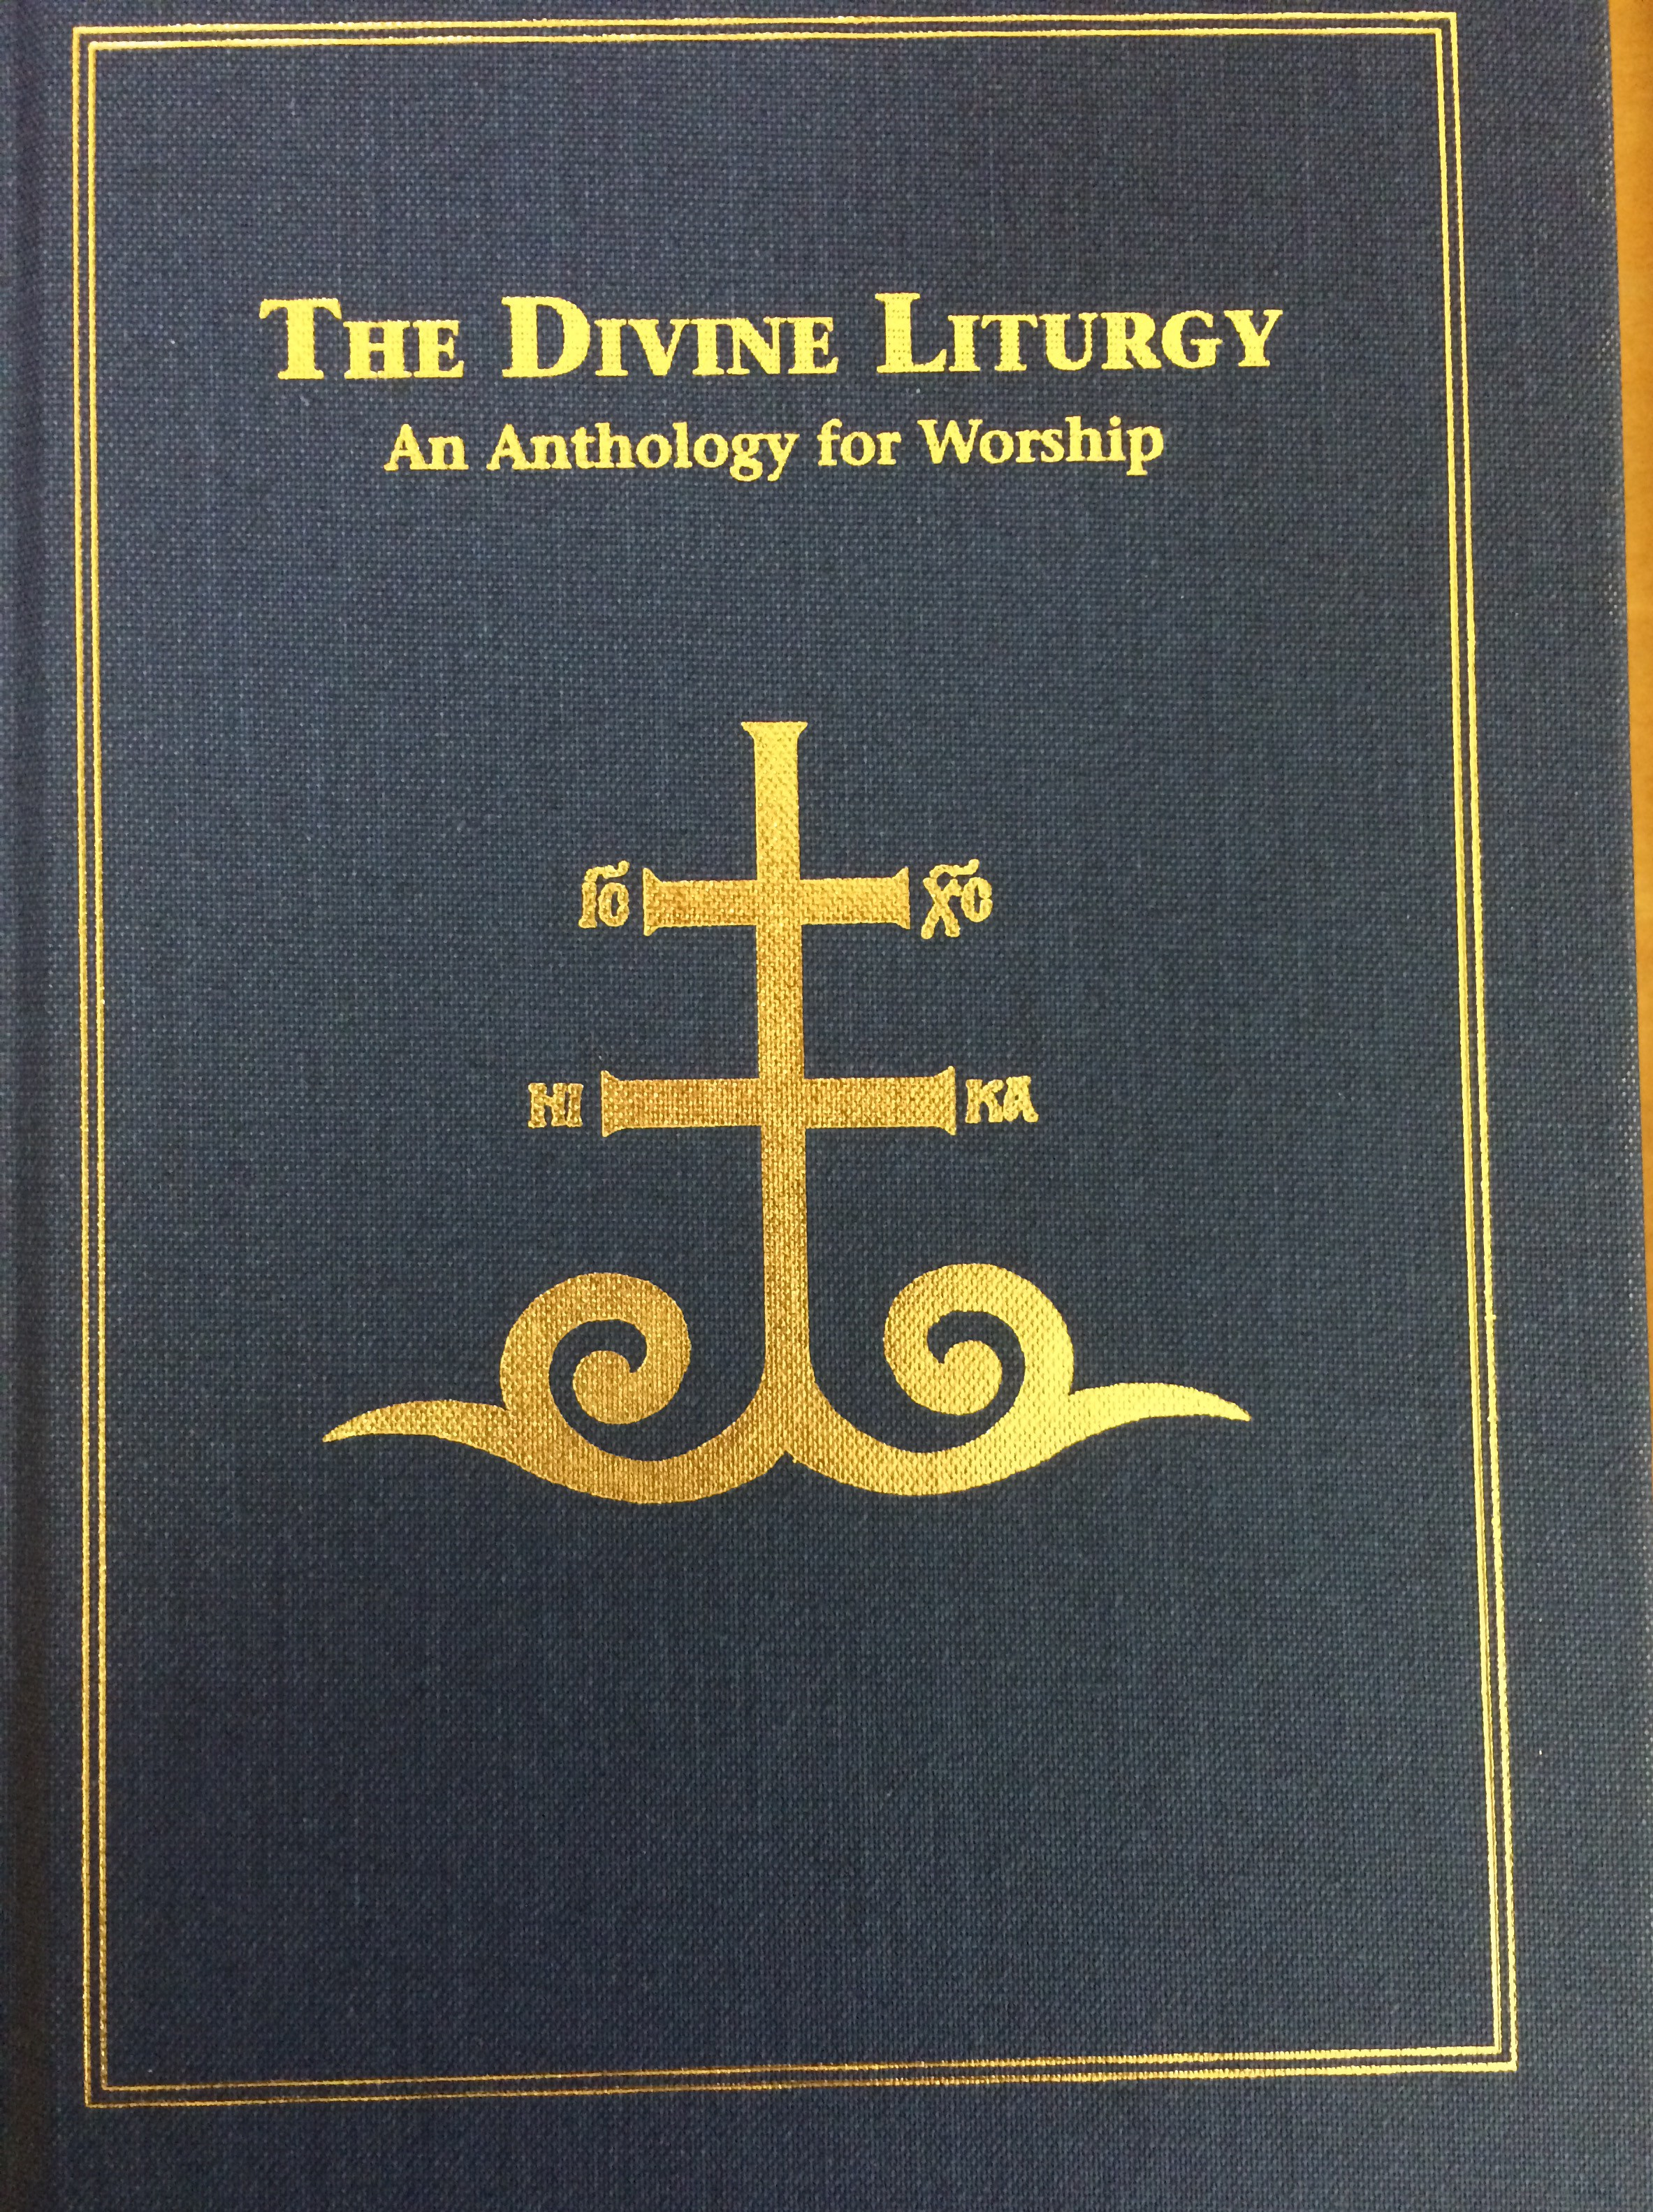 VIDEO: The Divine Liturgy – An Anthology for Worship – Father Peter Galadza – Part 6